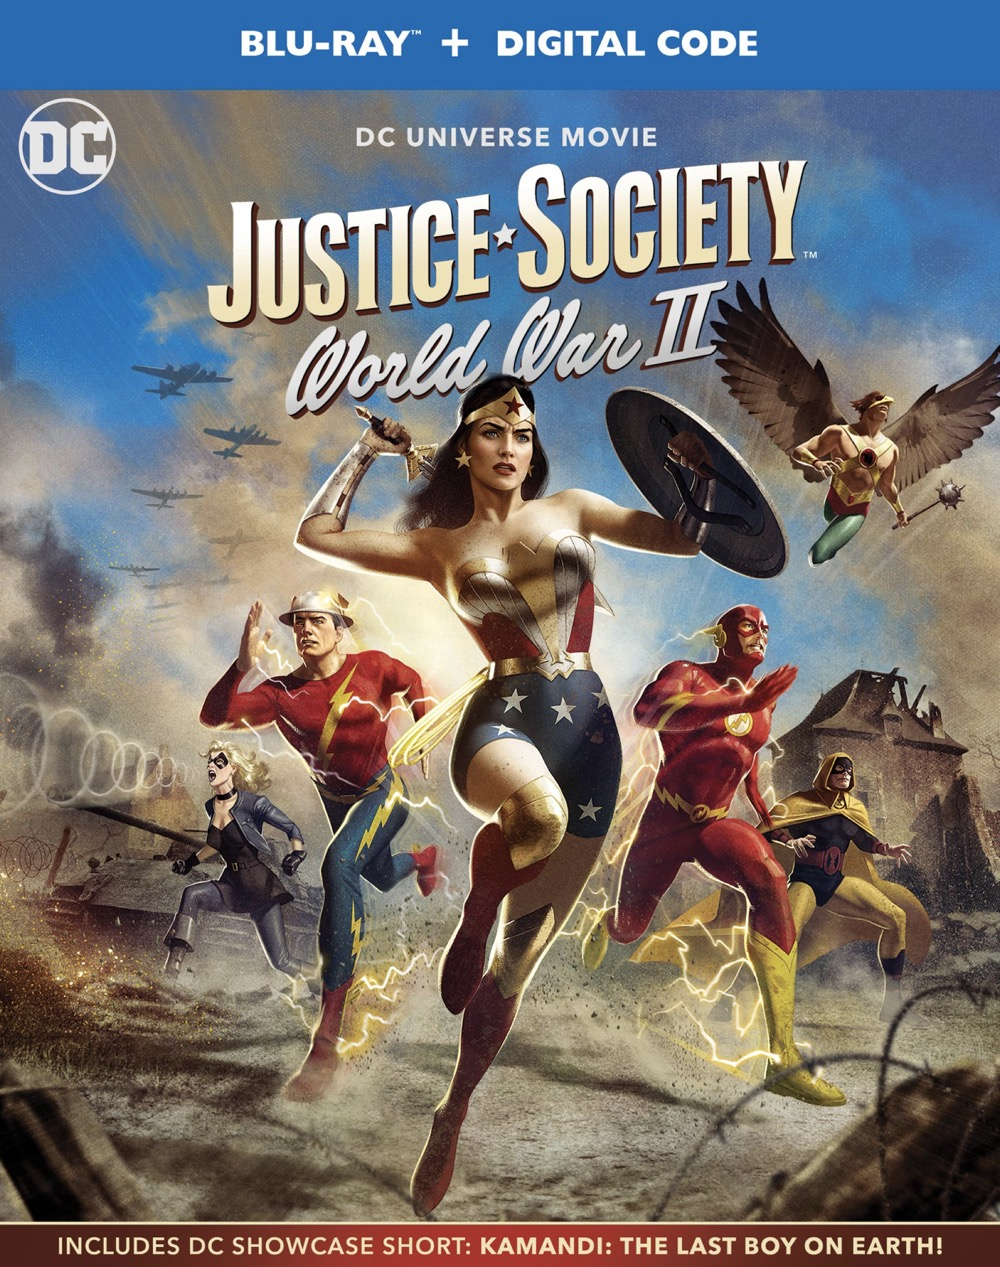 JusticeSociety WWII 1000783437 BD OSLV 2D TEMP DOM SKEW